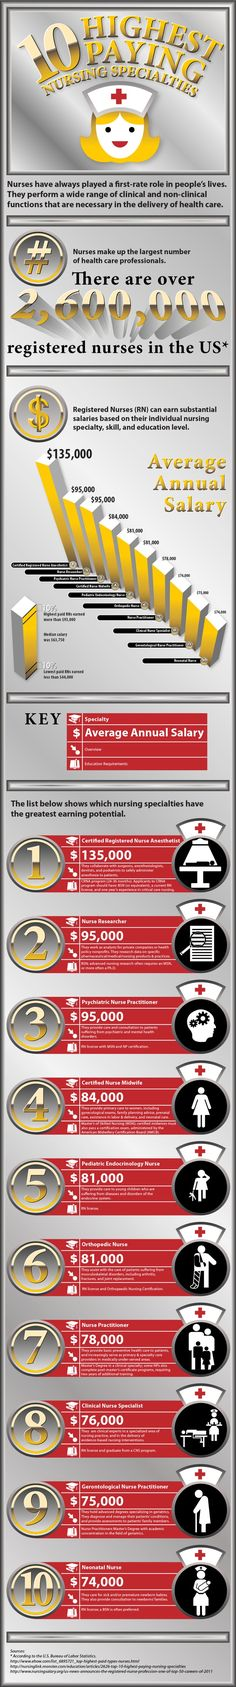 Notes for Bree's Niece...: 10 Highest Paying Nursing Specialities :   Gerontological Nurse Practitioner - they hold advanced degrees spezialising in geriatrics....  Psychiatric Nurse Practitioner - they provide care and consultation to patients suffering